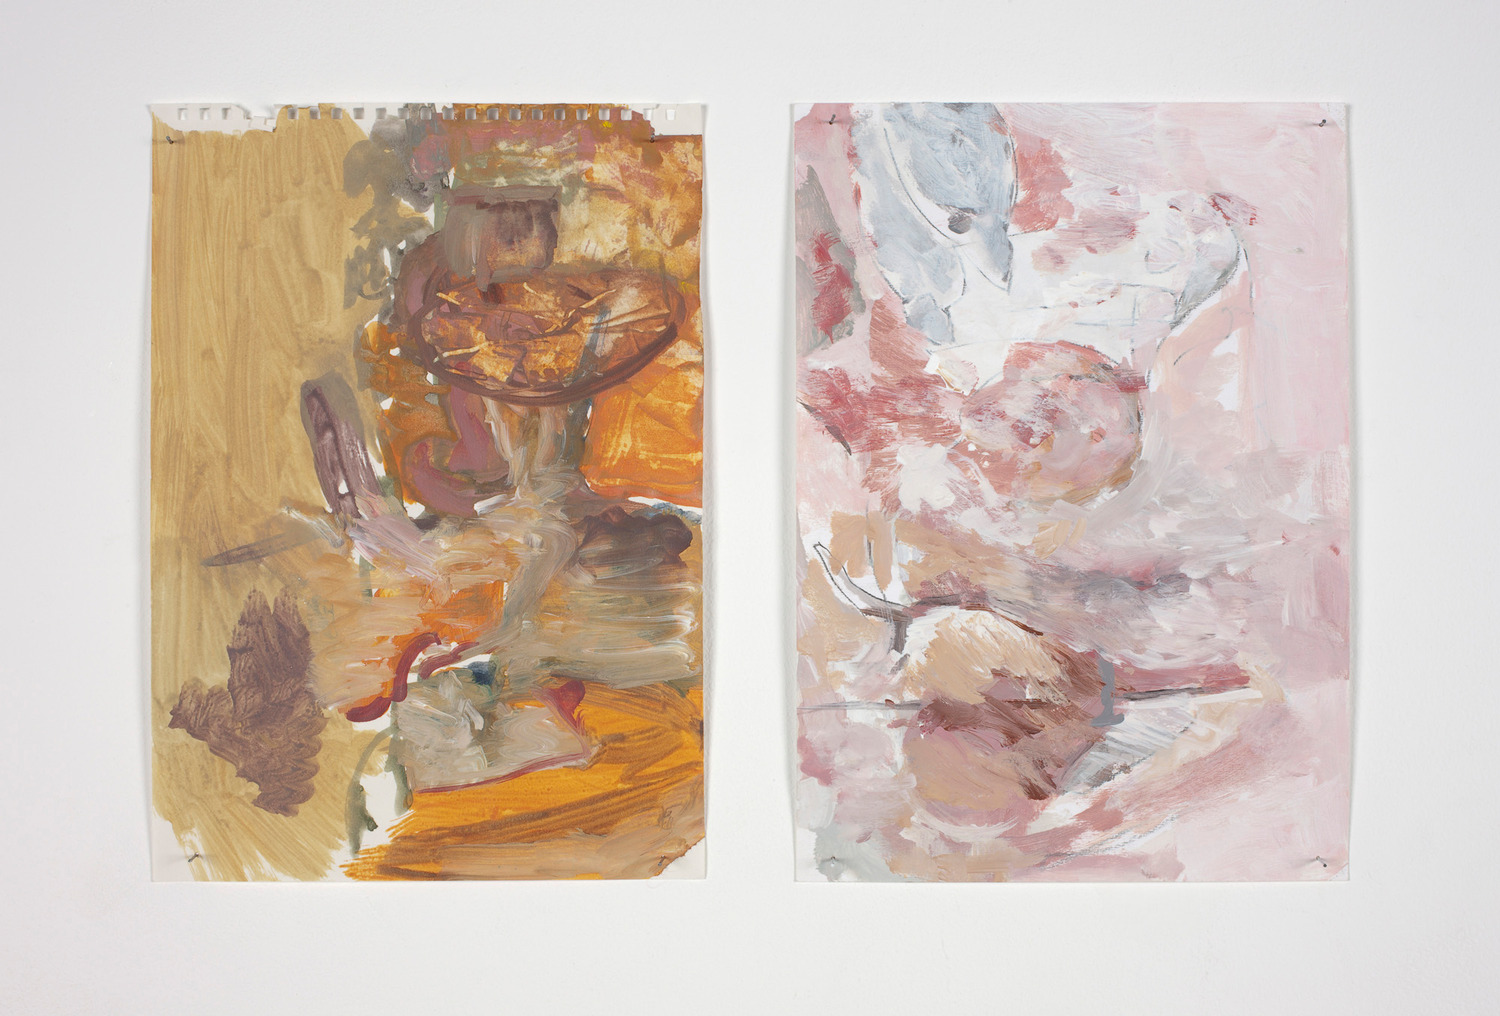 Cart, 2012, Acrylic on paper, 29.7 x 47.2 cm each